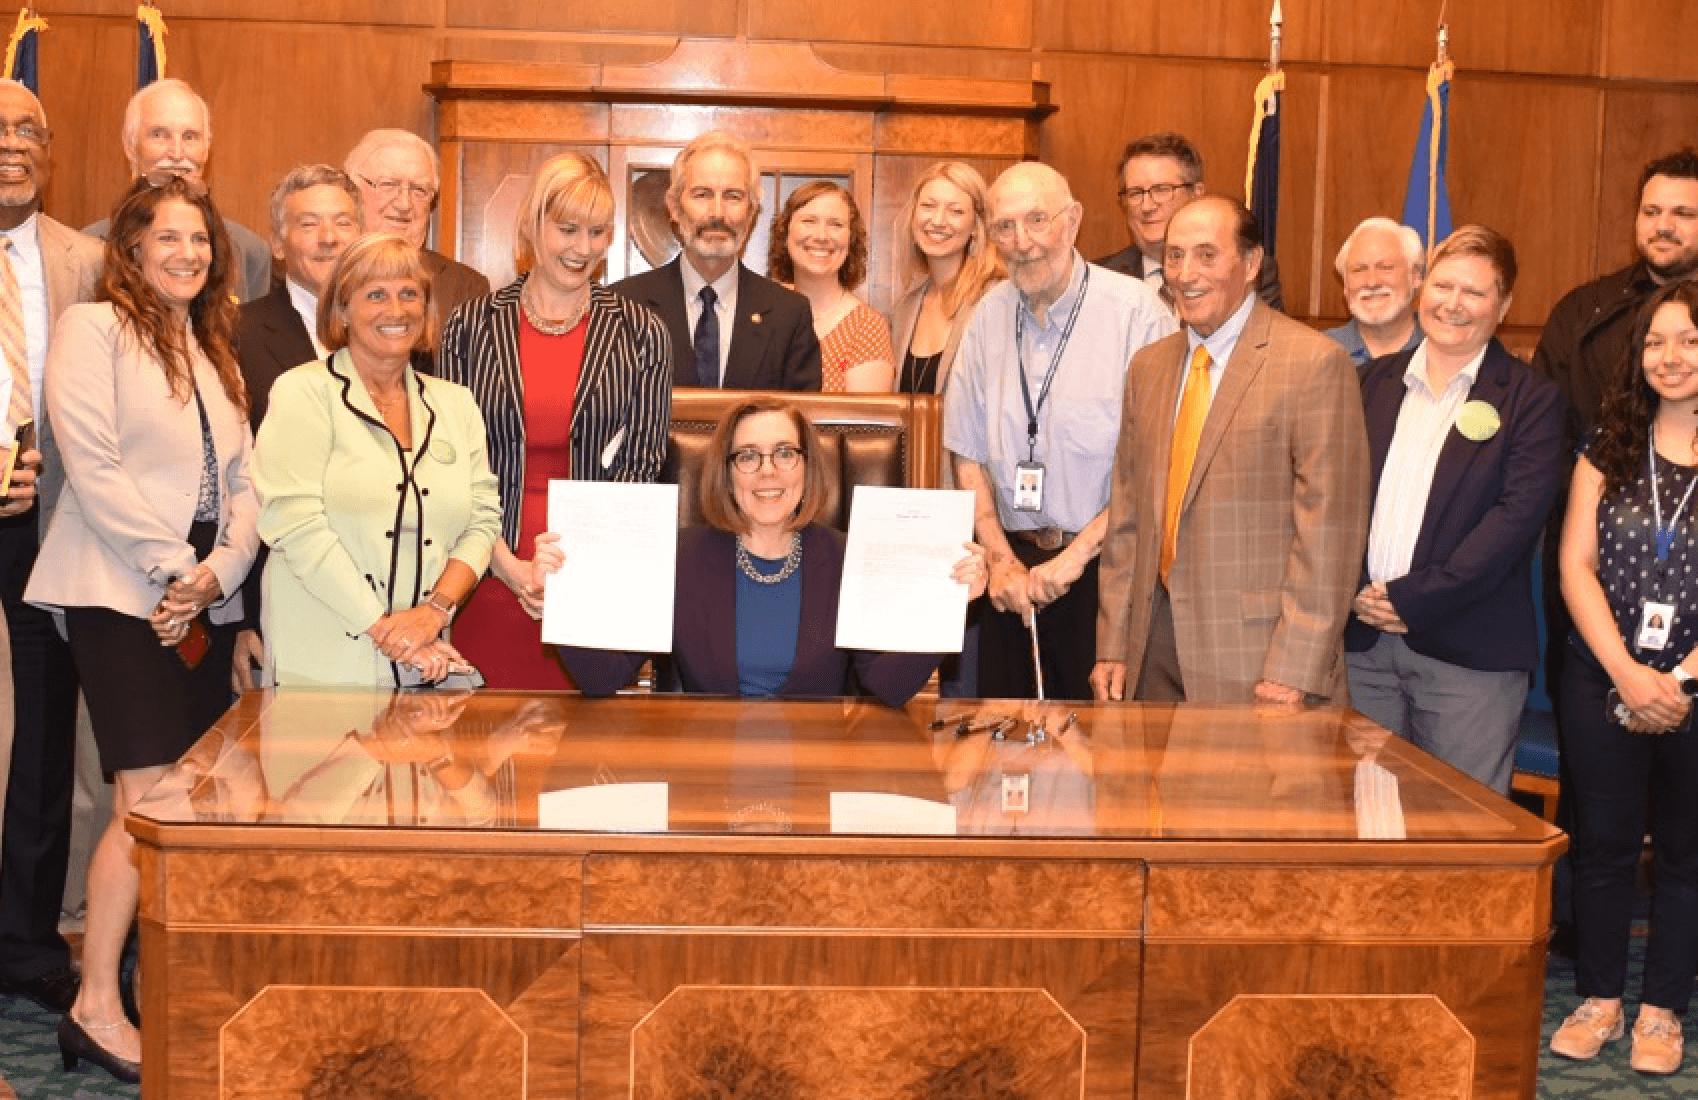 Oregon Governor Signs Bill Narrowing Use of the Death Penalty